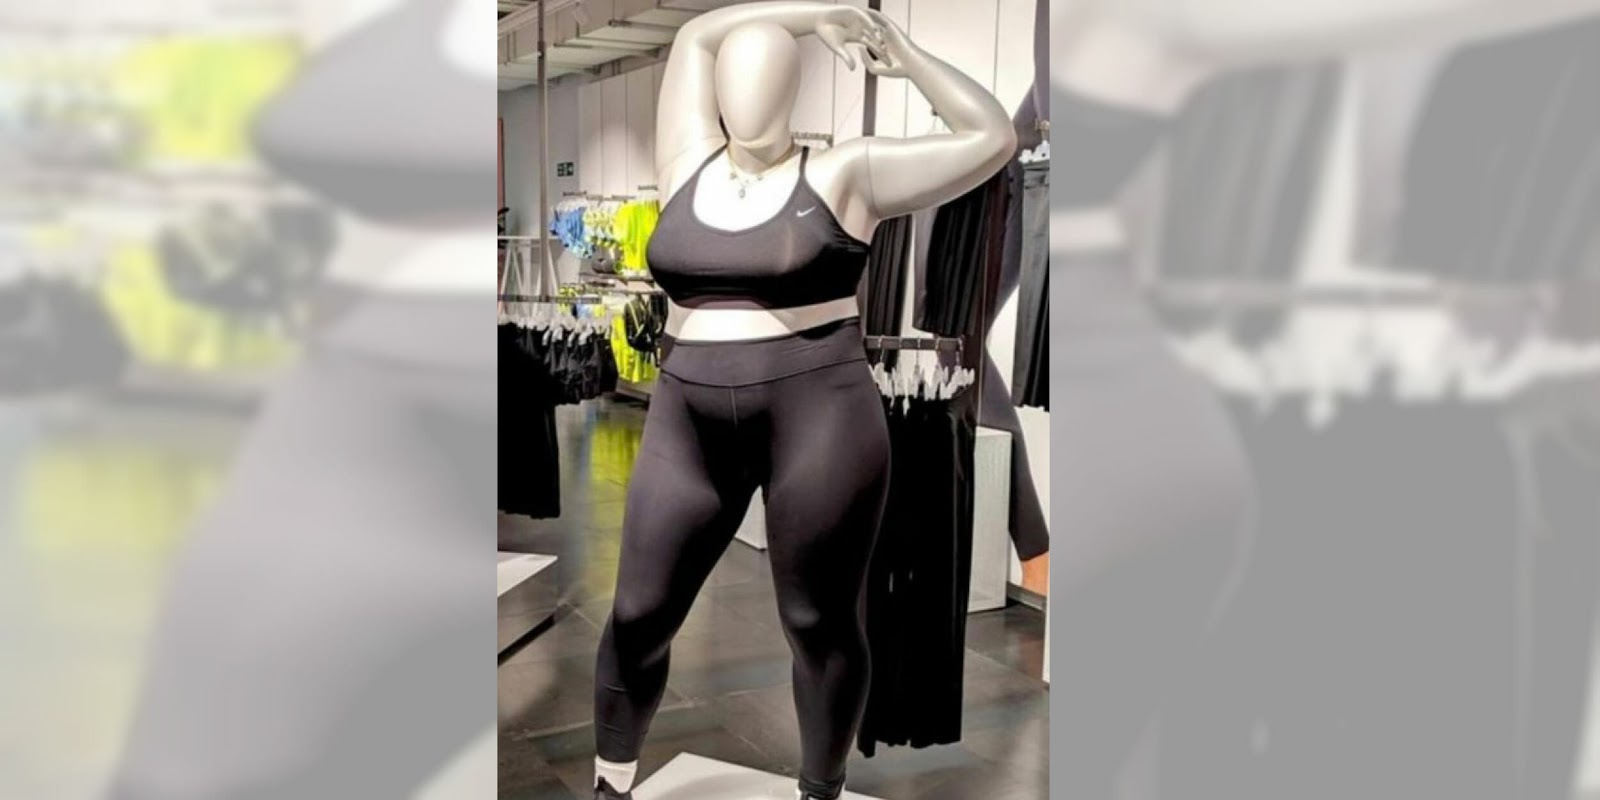 It seems like the whole world has something to say about the larger bodied Nike mannequin, so I joined them and provided comment to the SMH.